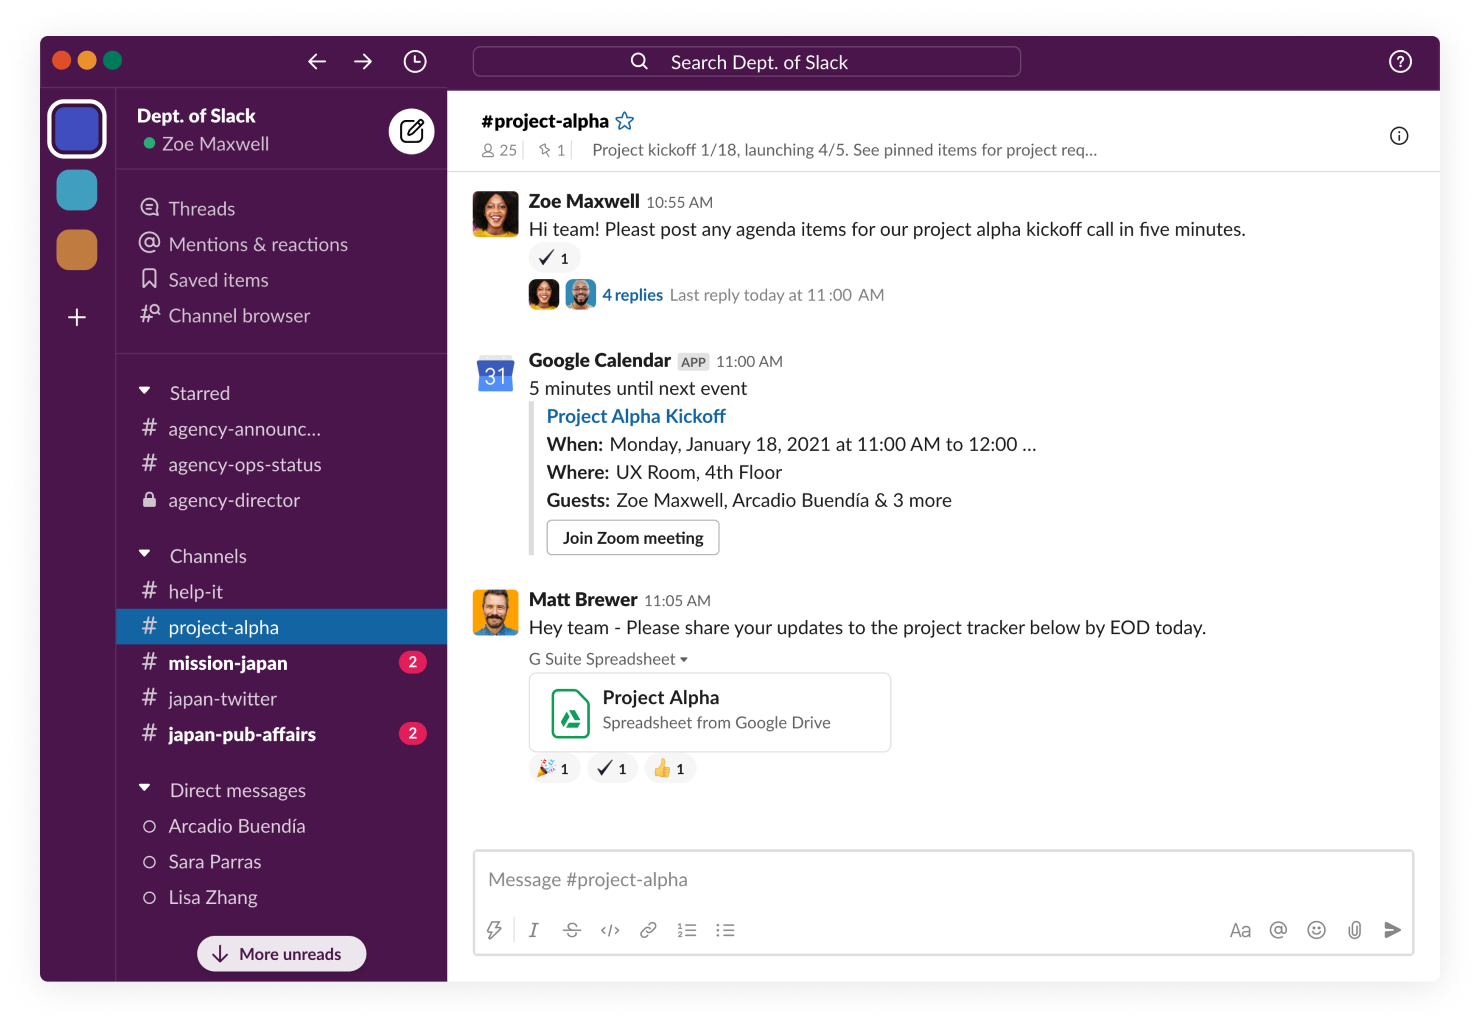 Slack interface with channels and team messages